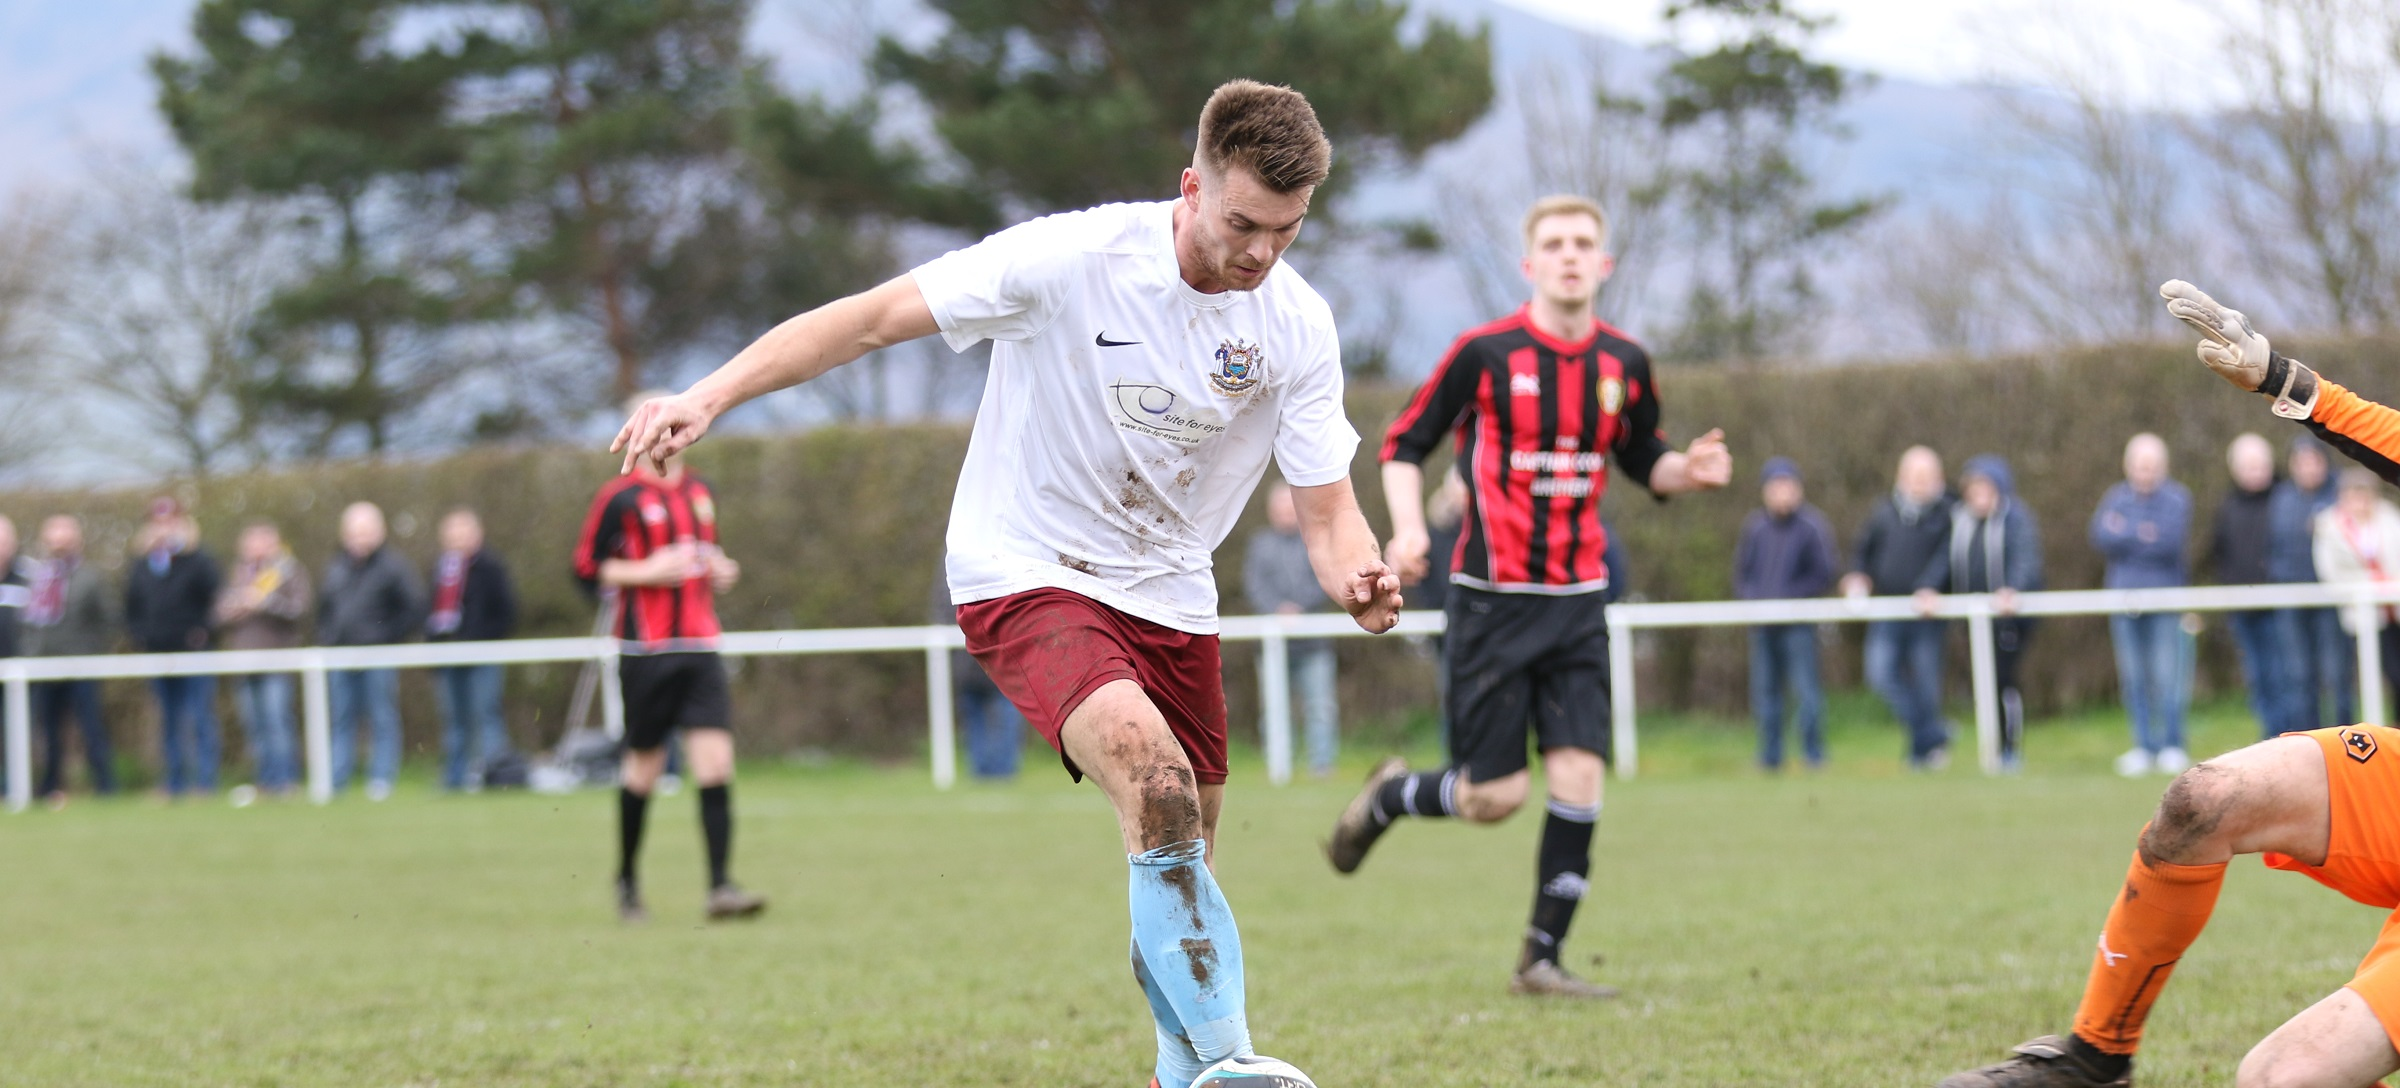 HIGHLIGHTS: Stokesley Sports Club 0-3 South Shields